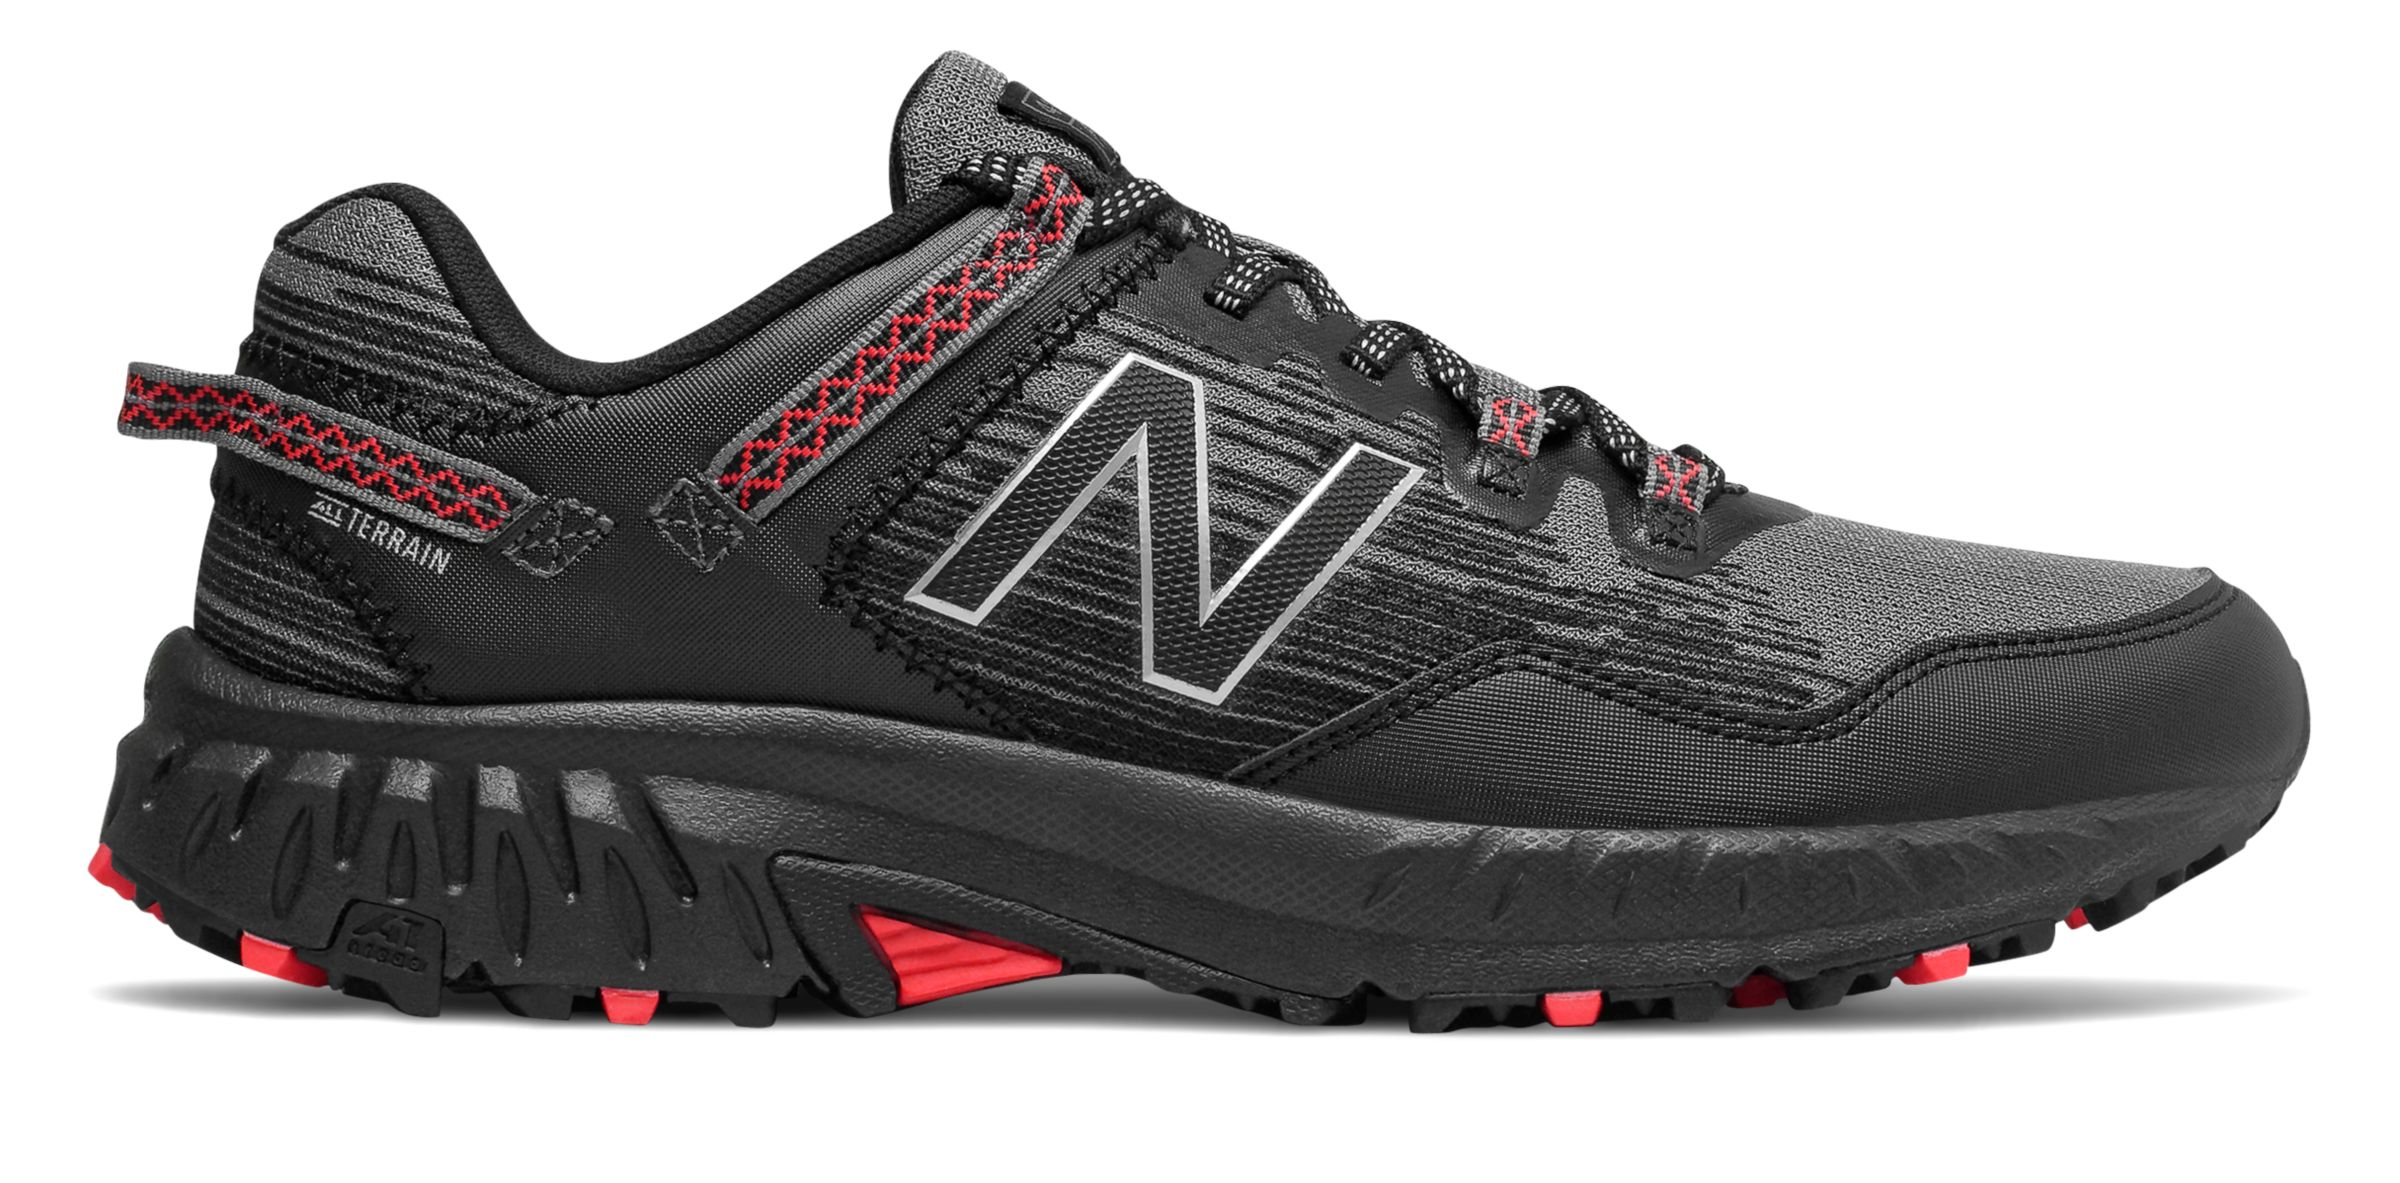 481134a9f81 New Balance Men s 410V6 Trail Shoes Black With Grey   Red